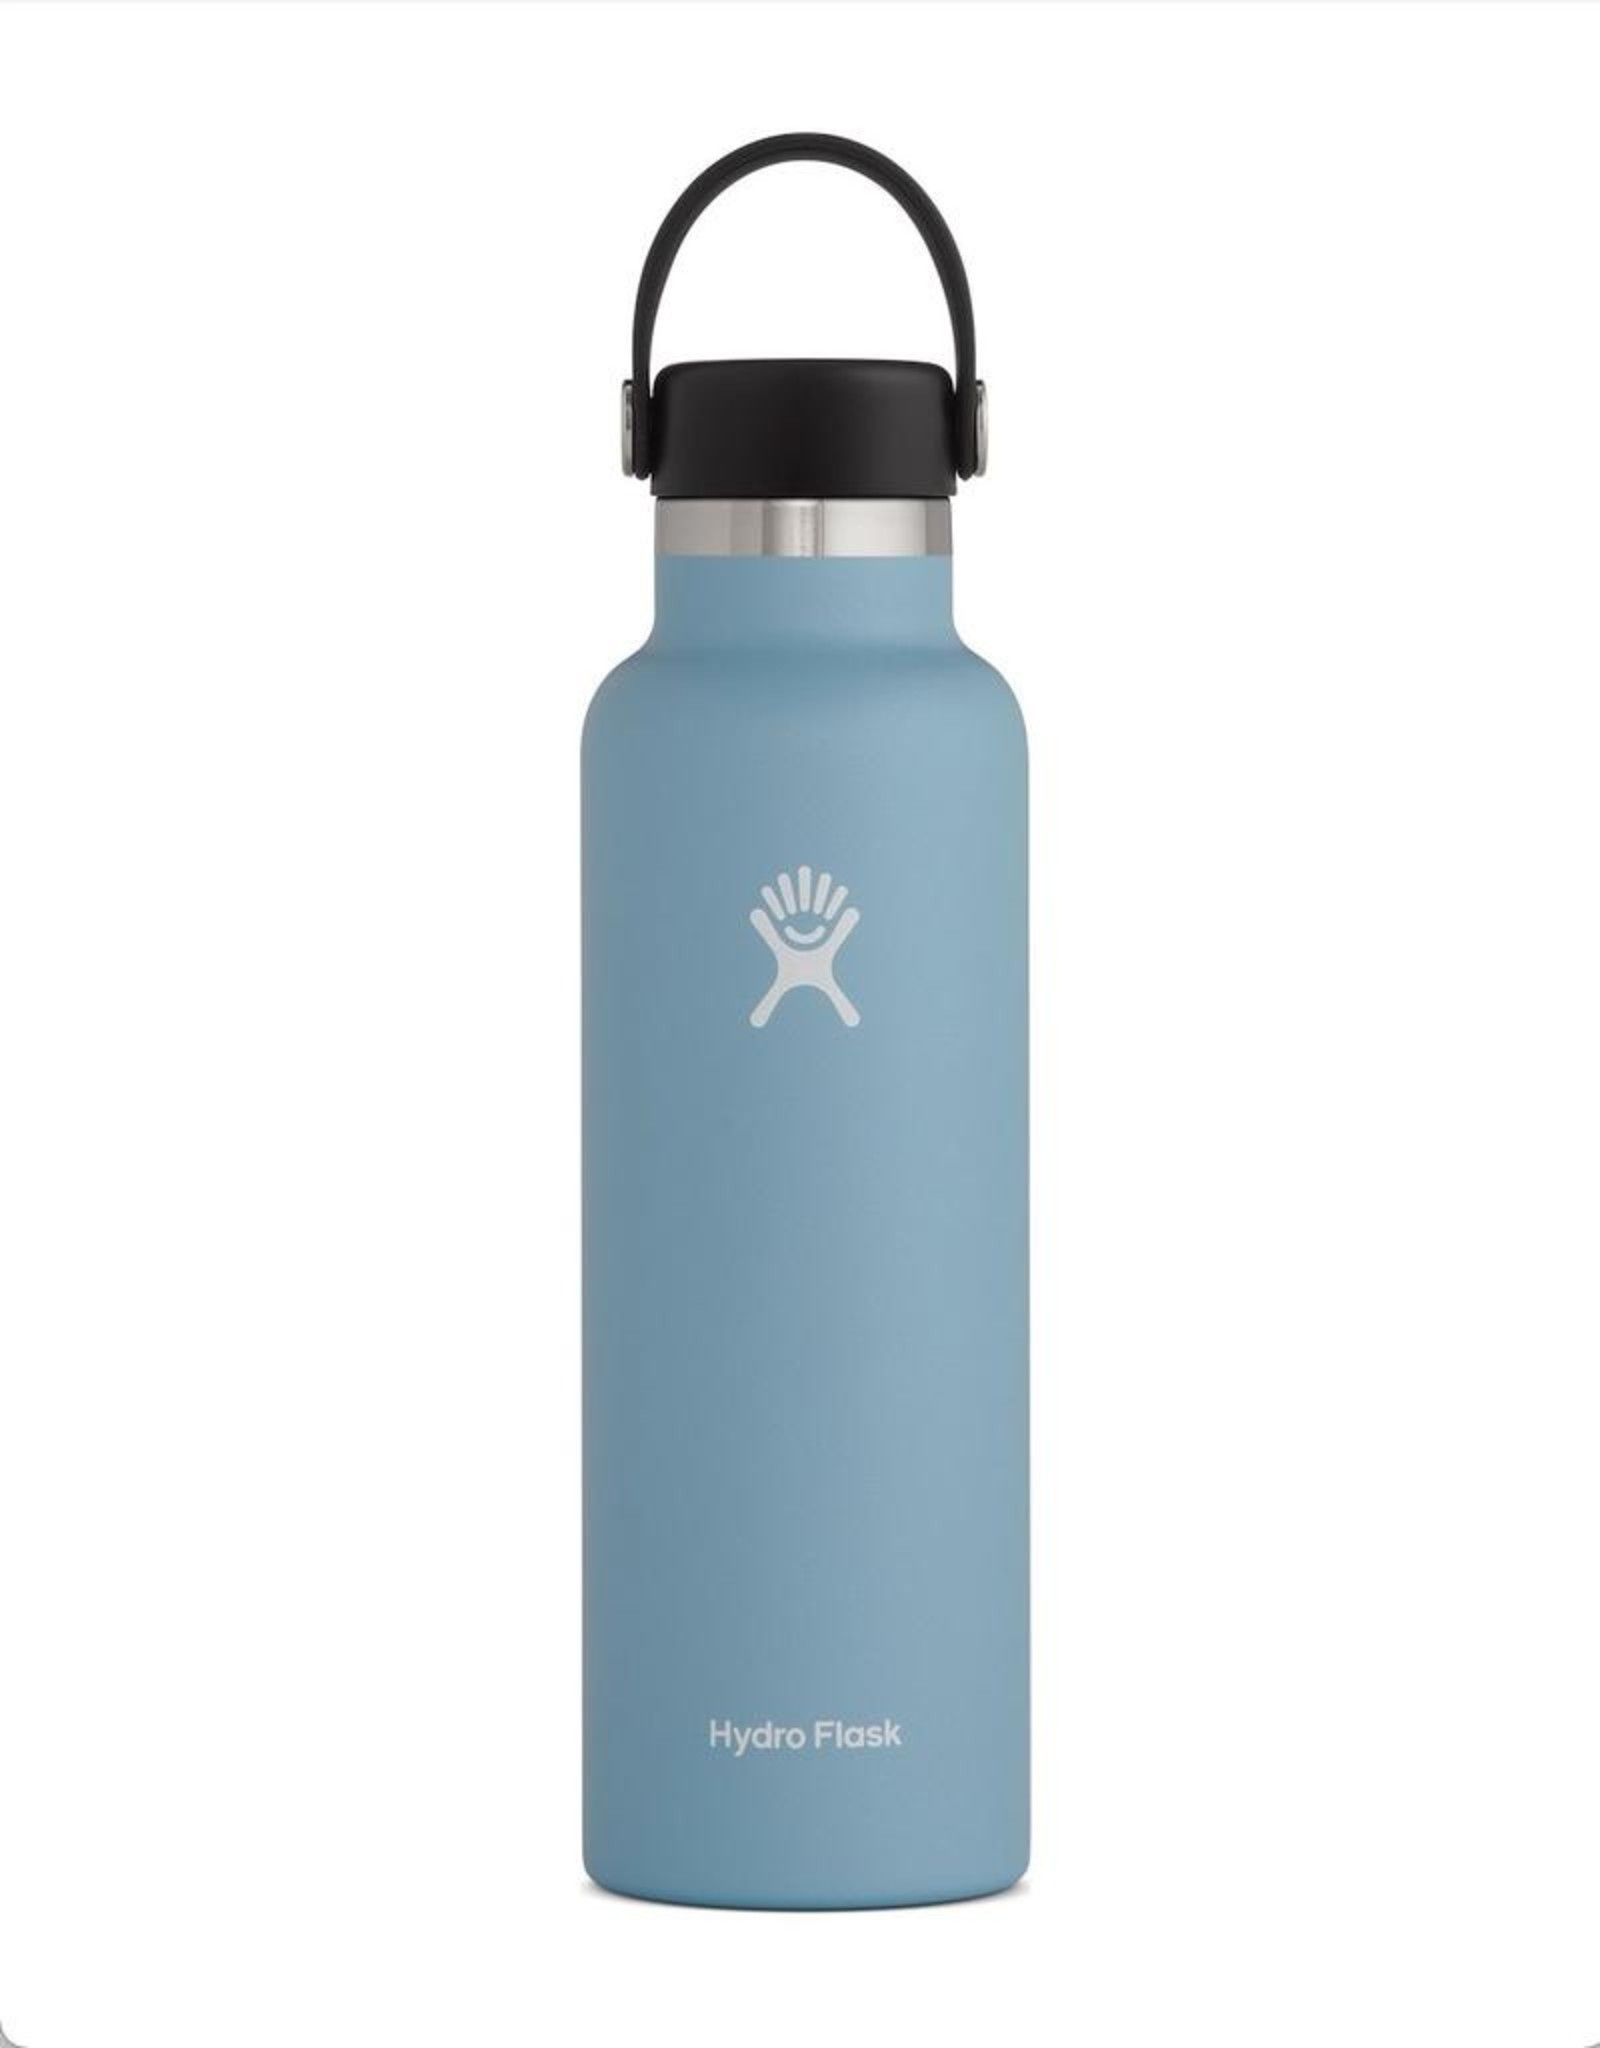 Hydro Flask 21 oz Standard Mouth in Rain